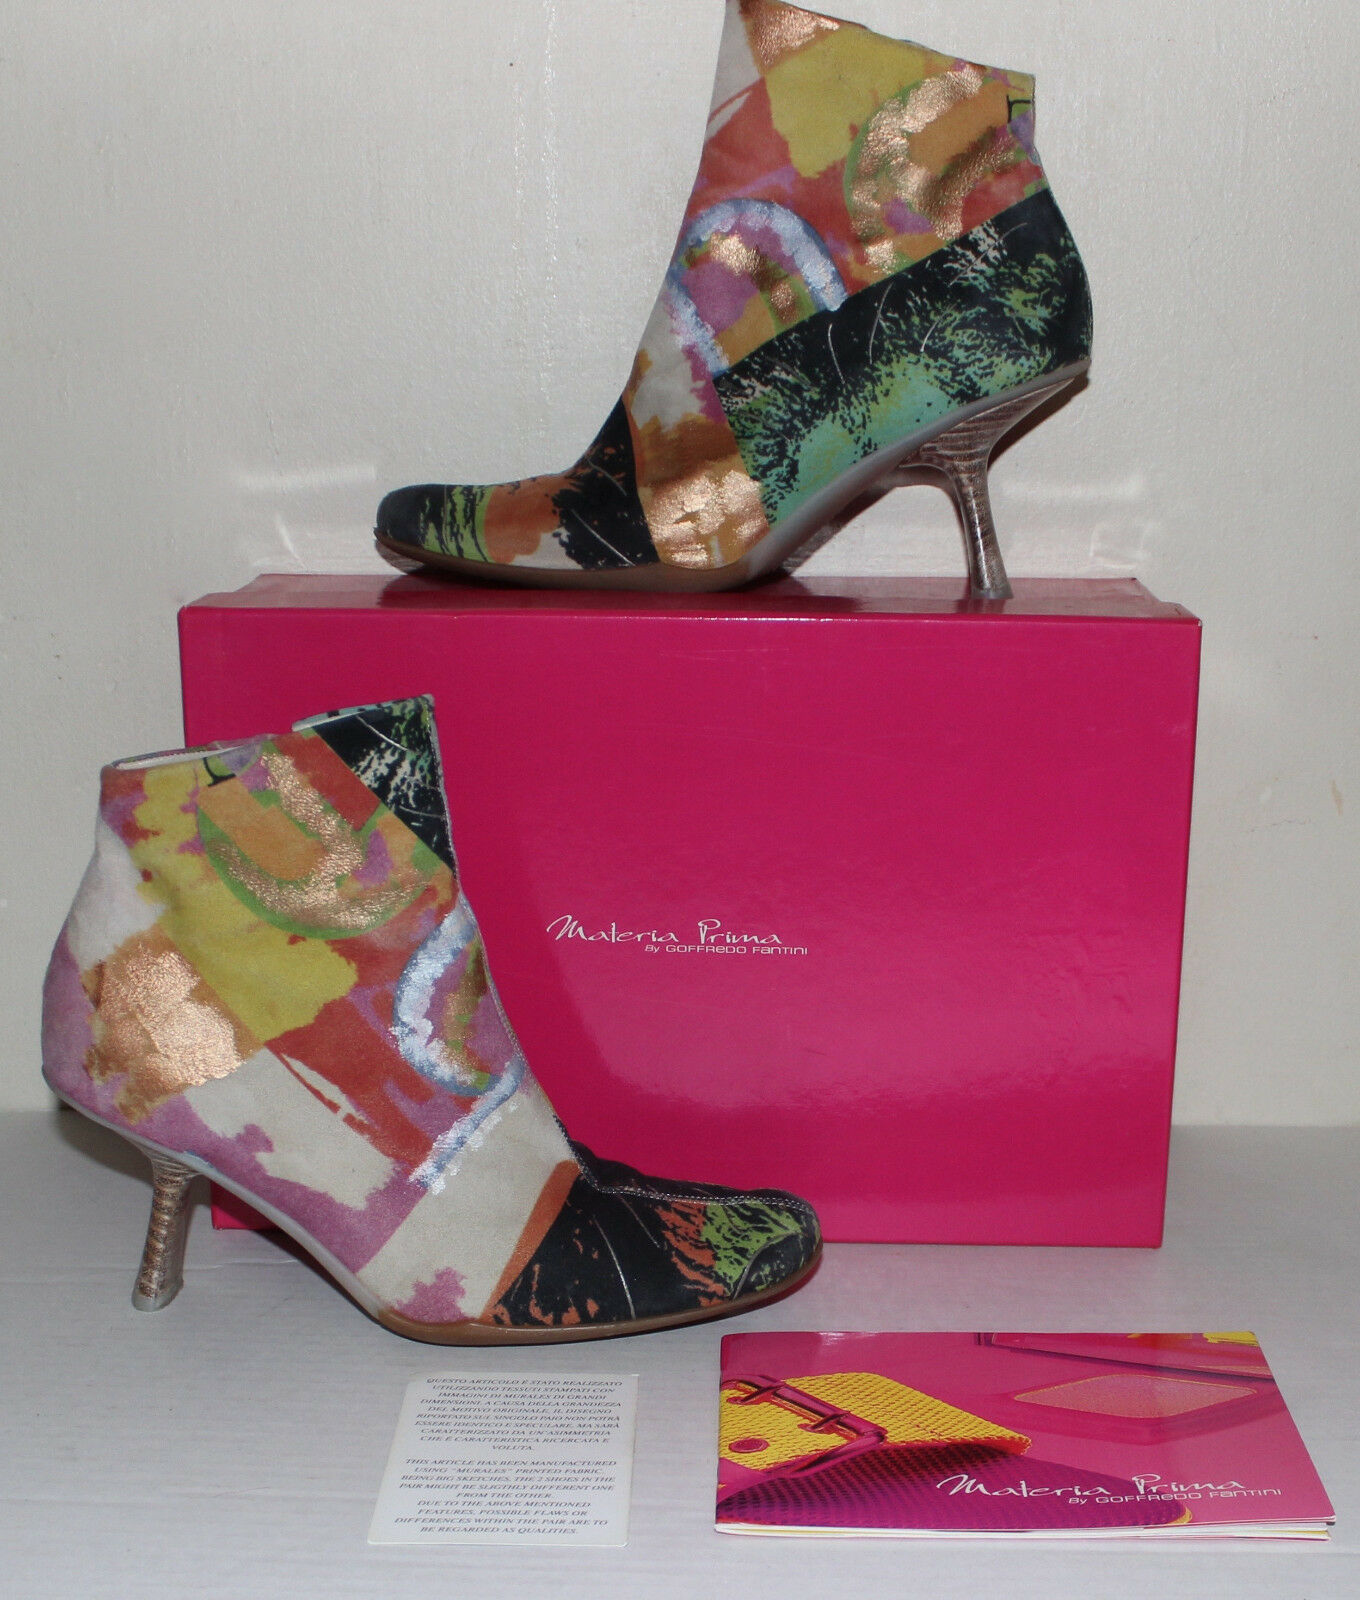 Materia Prima by Goffredo Fantini Poster Pelle print suede ankle boots  38